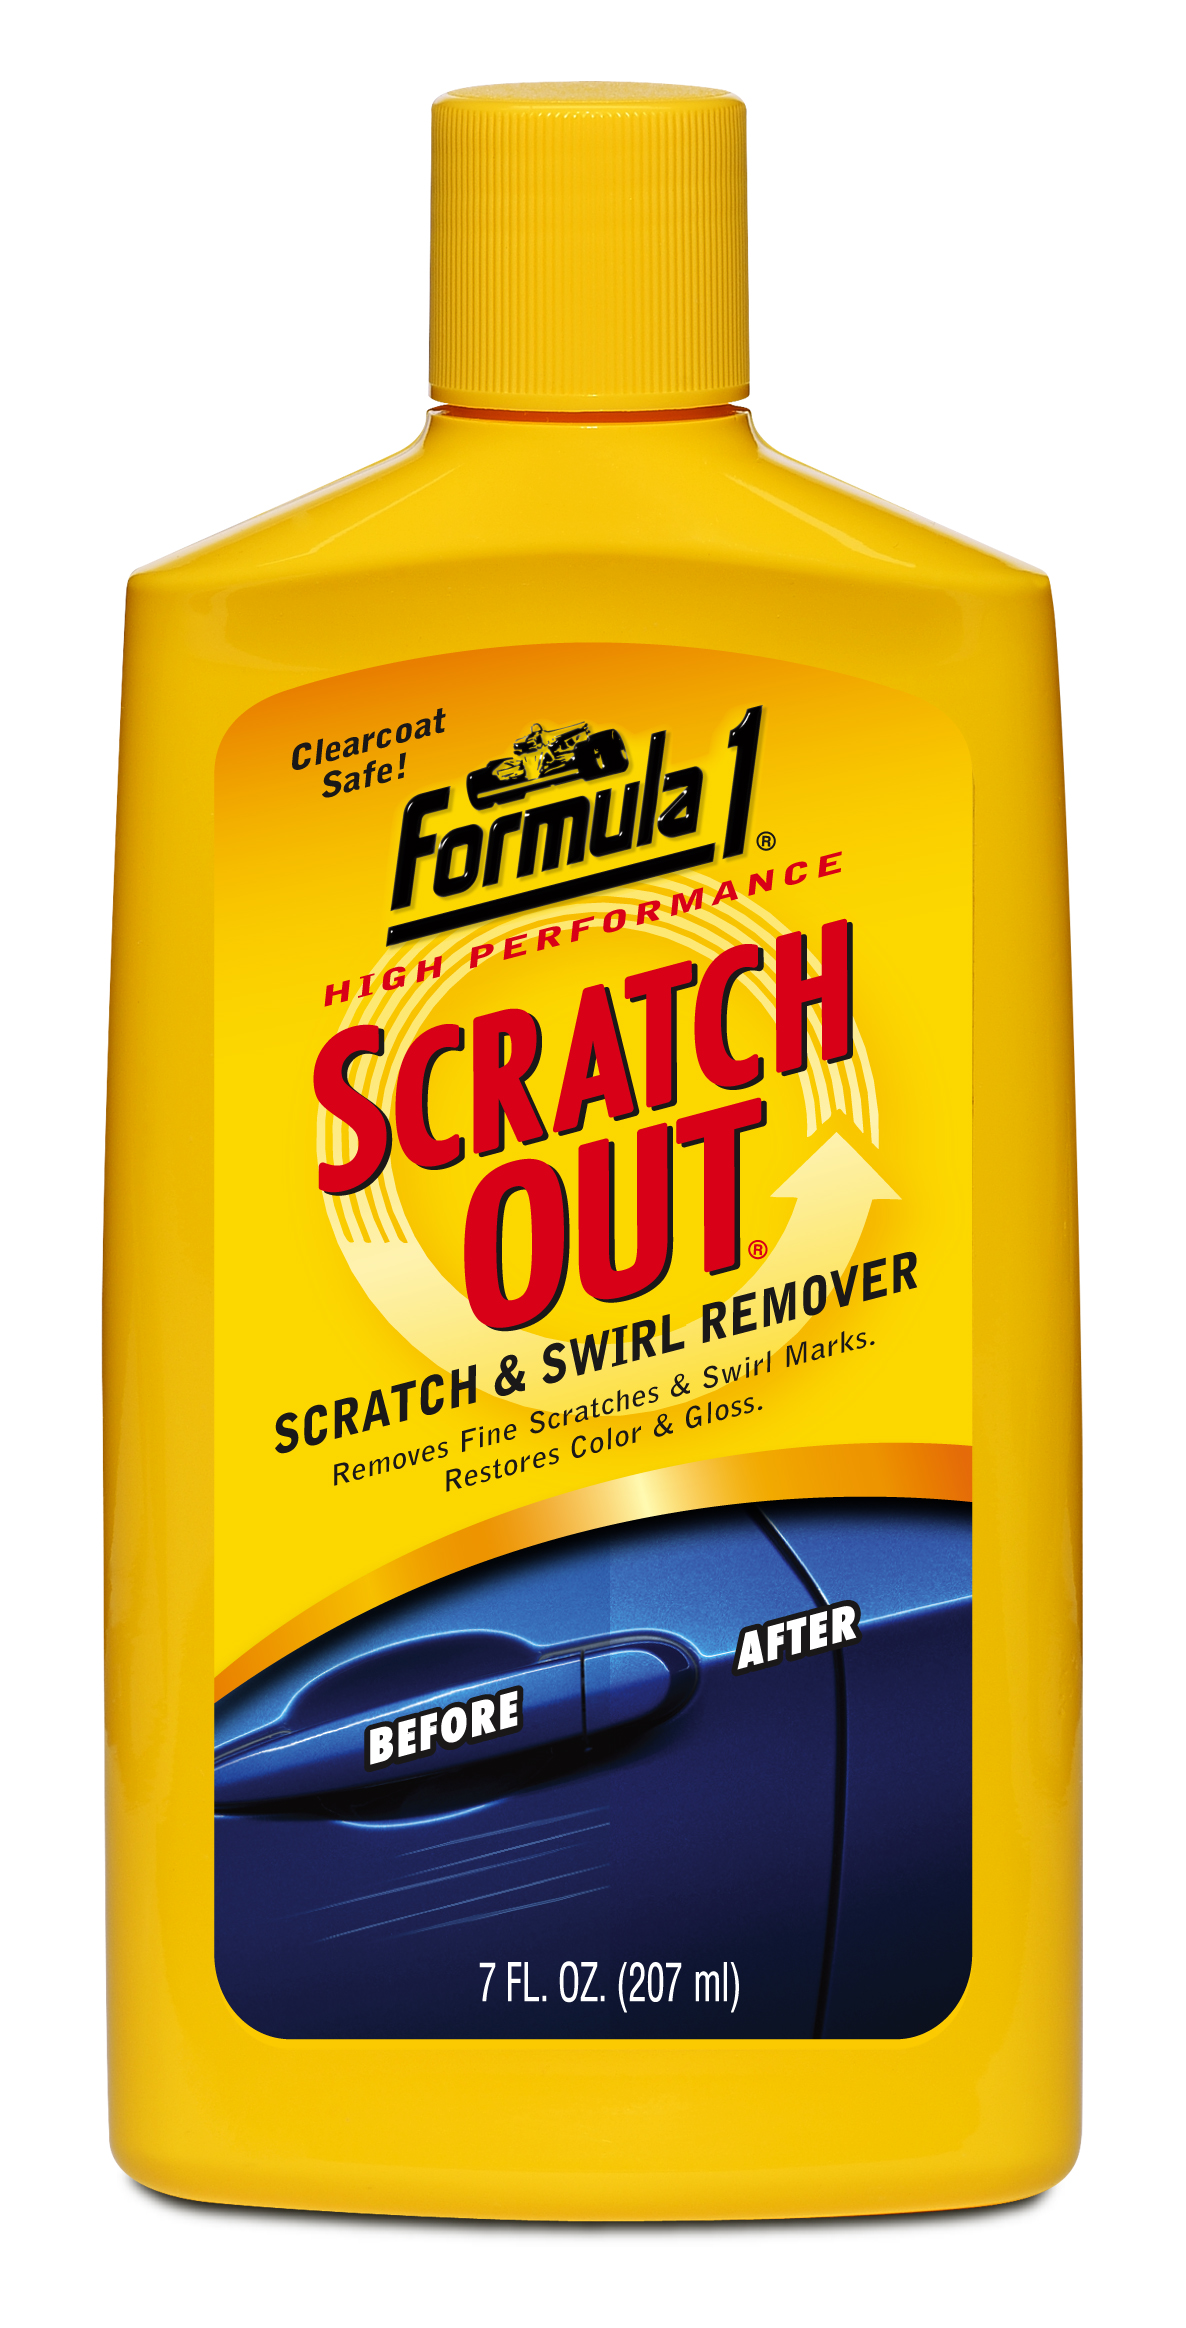 Scratch Out Liquid Image